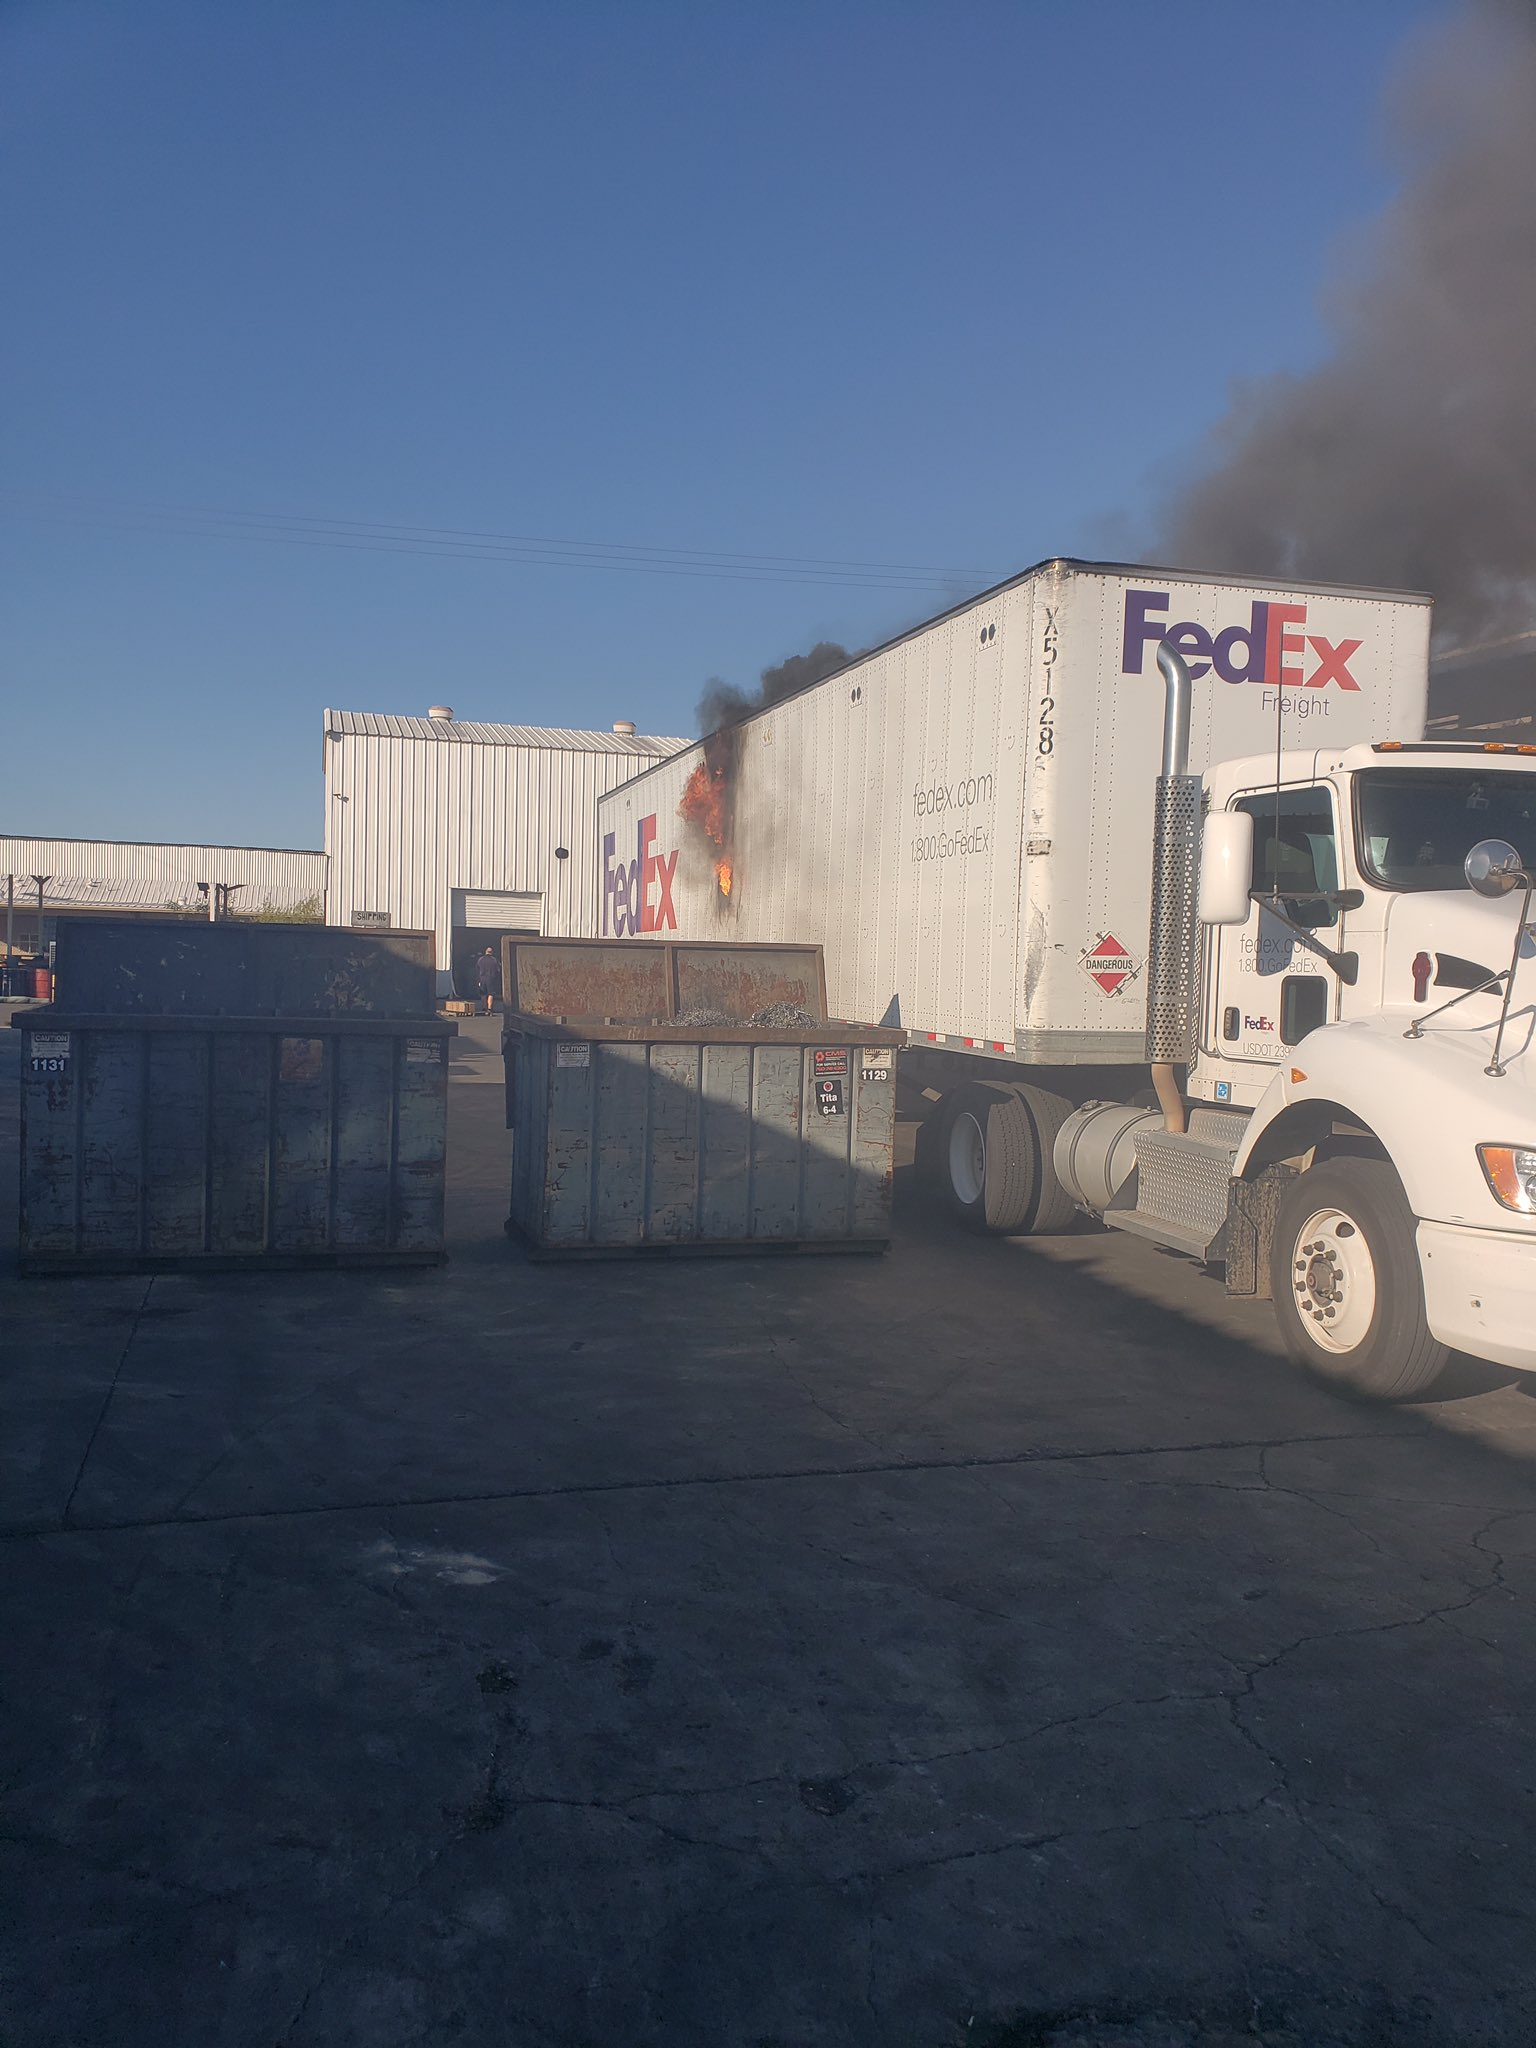 Travis Rice On Twitter Photos From Employee Show Fedex Truck Fire Became Hazmat Situation At Machining Manufacturing In El Cajon No One Was Injured